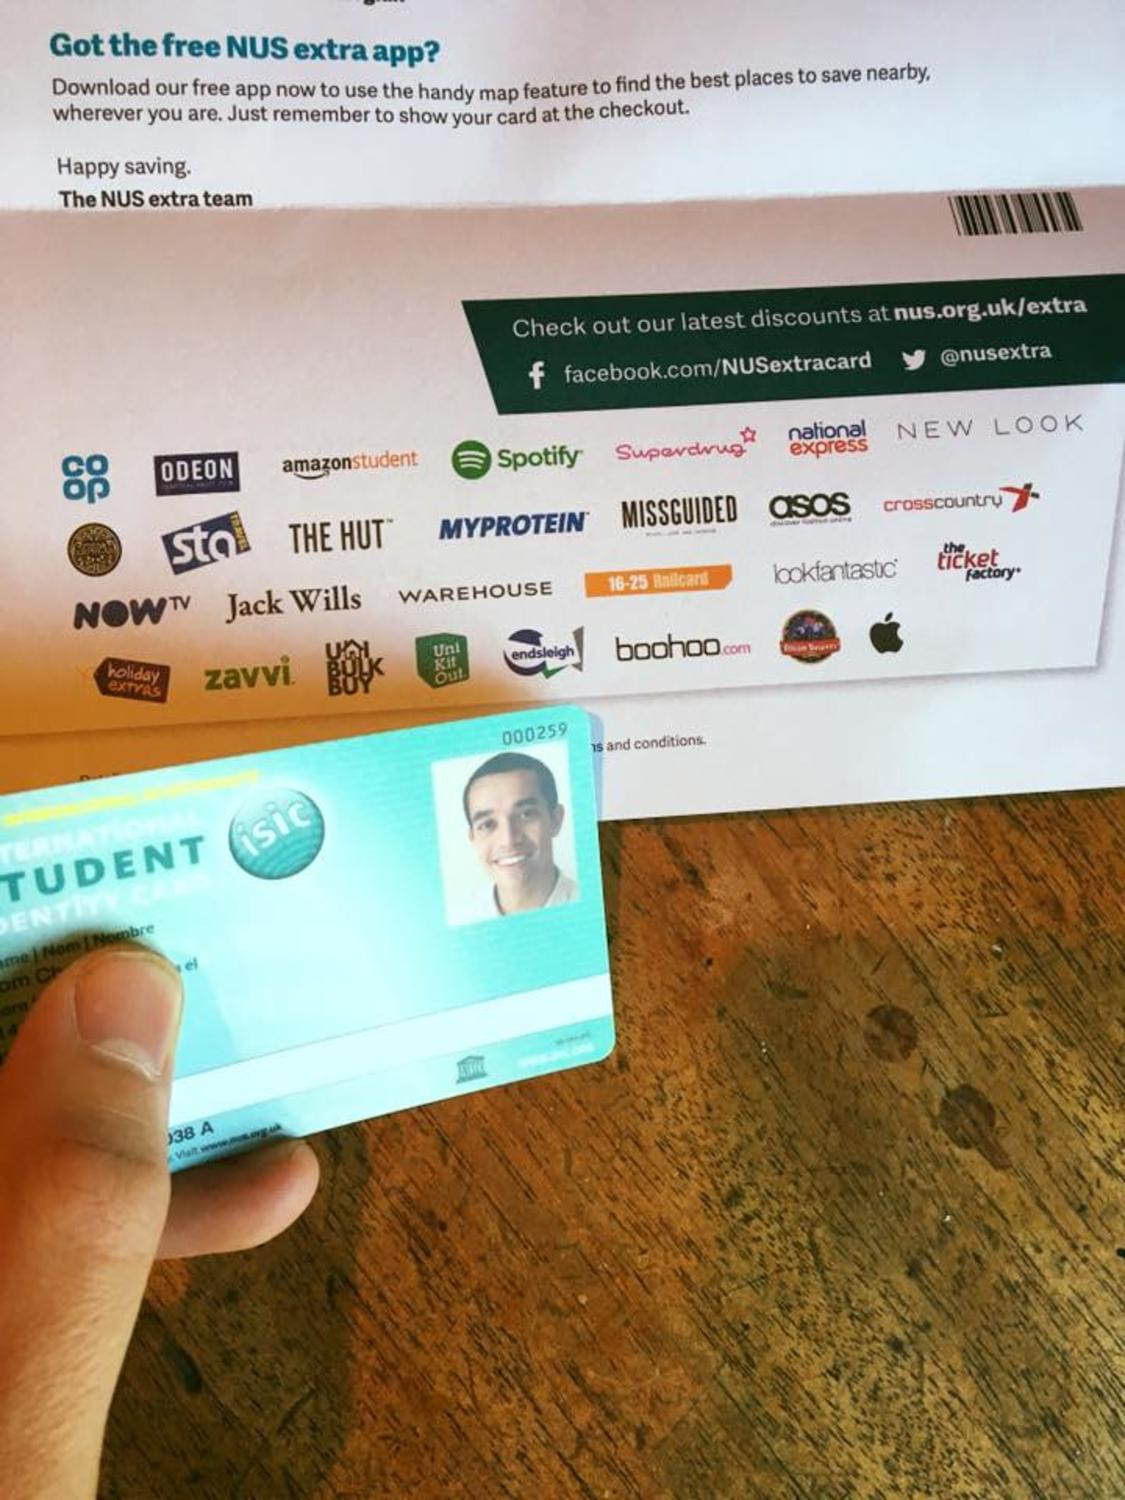 How to get an NUS card when not a student